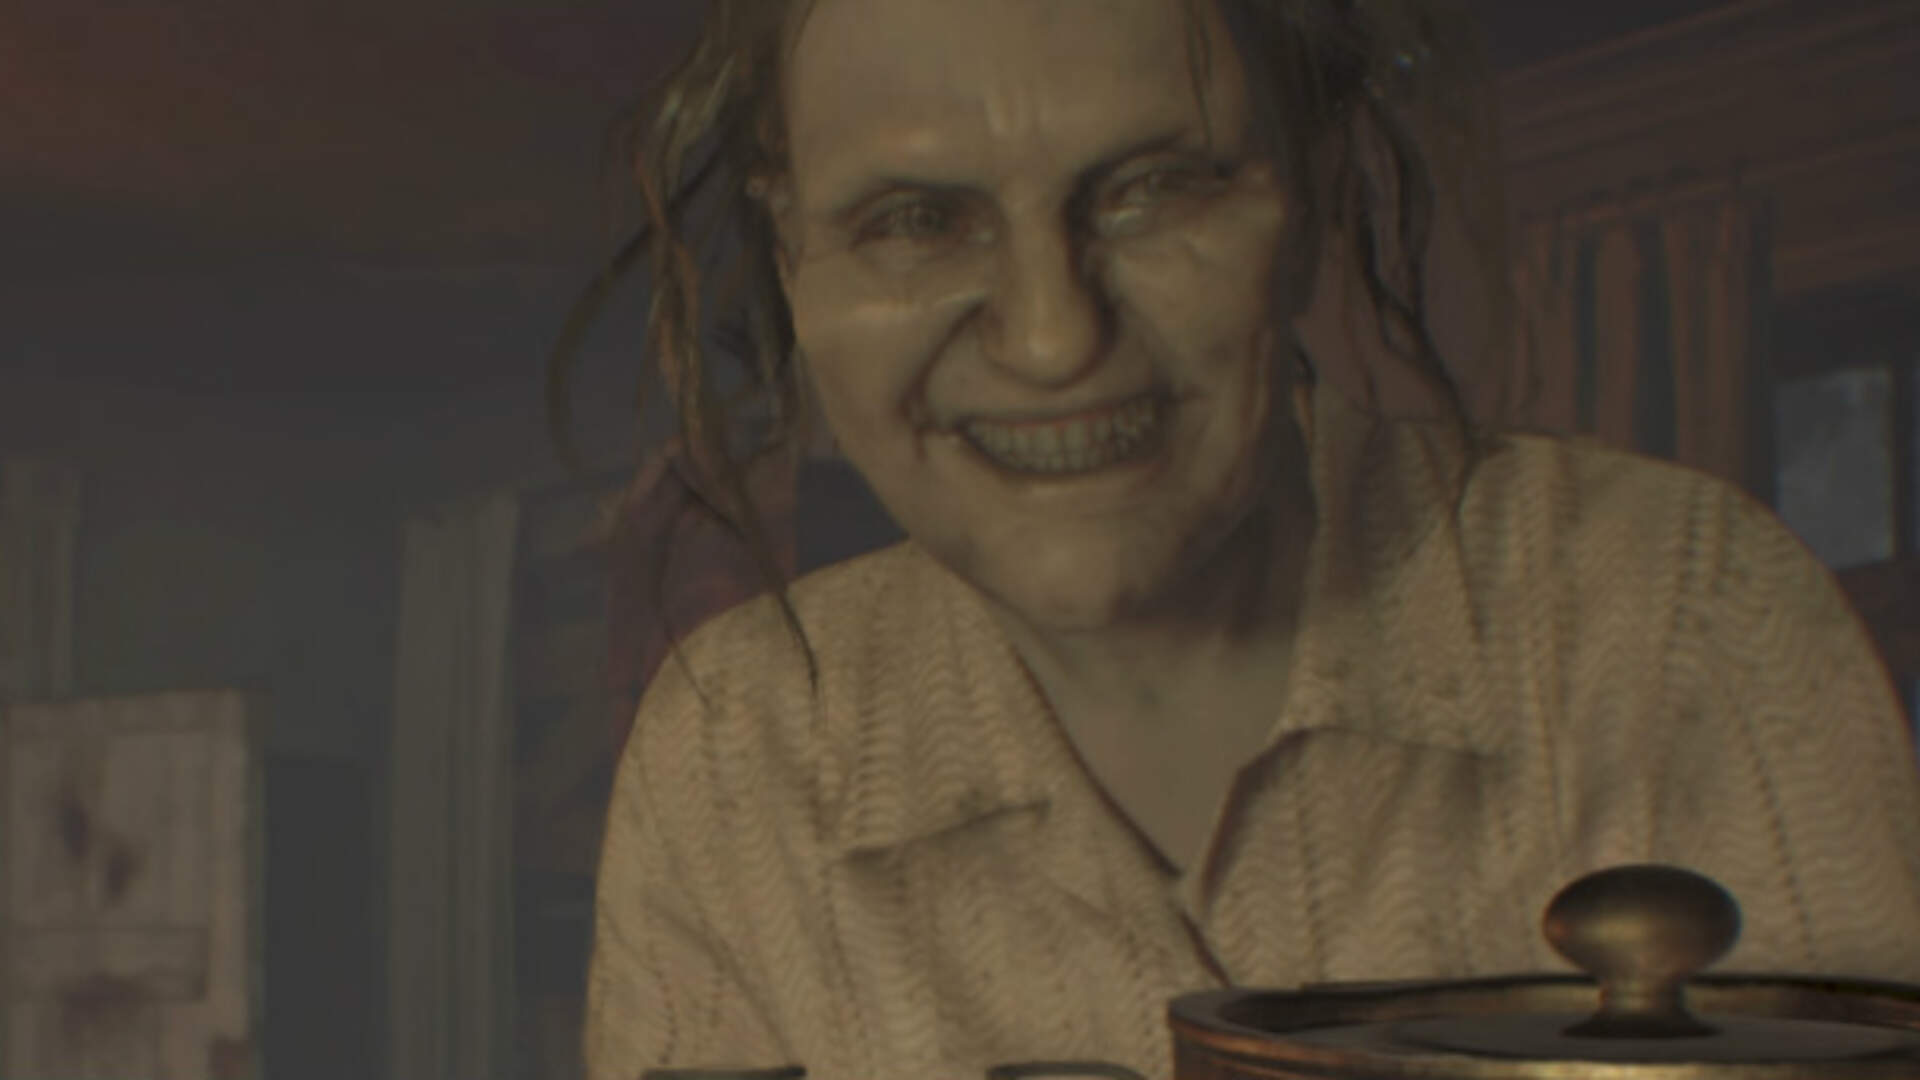 Resident Evil 7 Is Now the Best-Selling Game in the Series